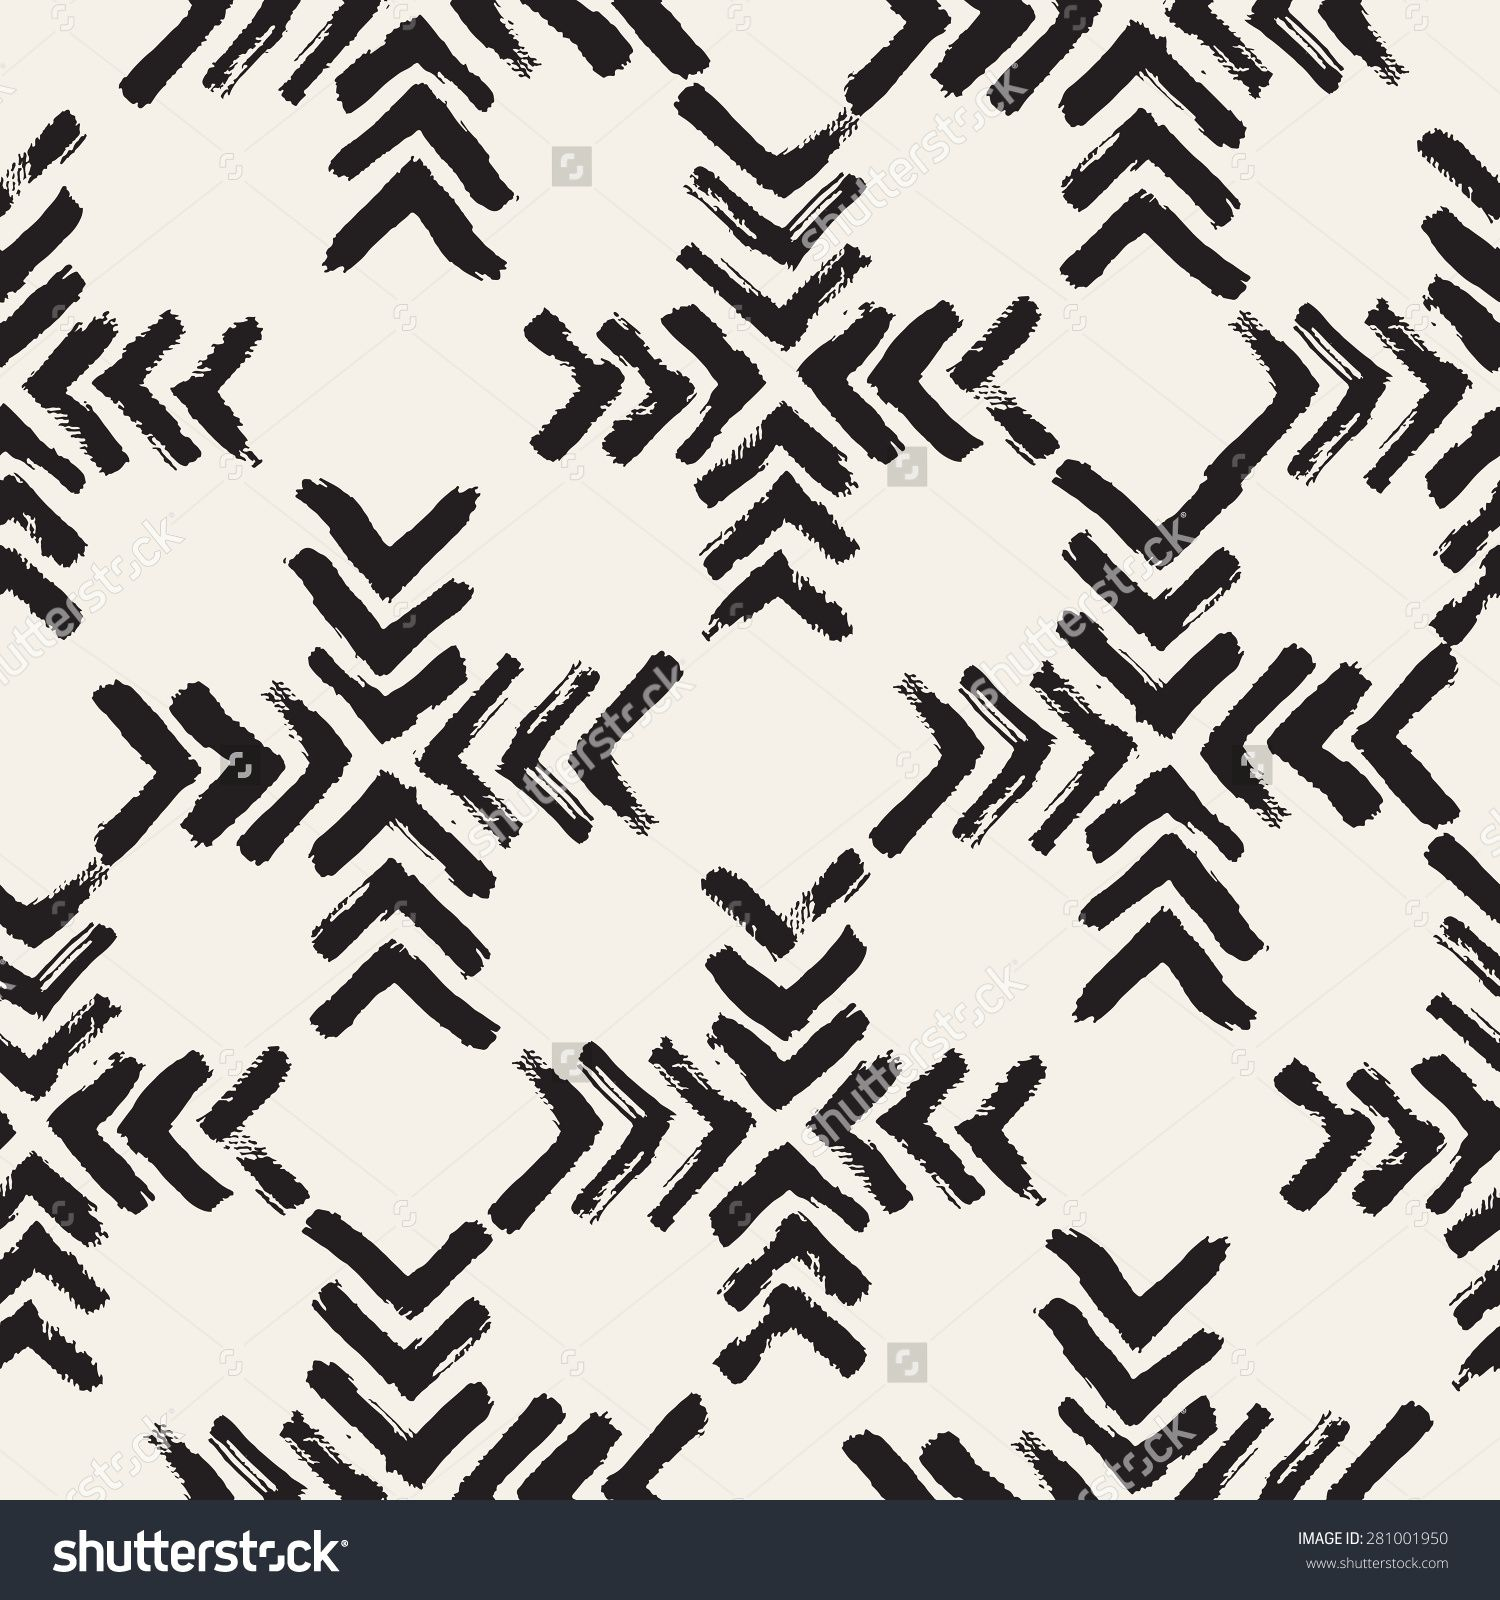 Vector seamless pattern abstract background with brush strokes